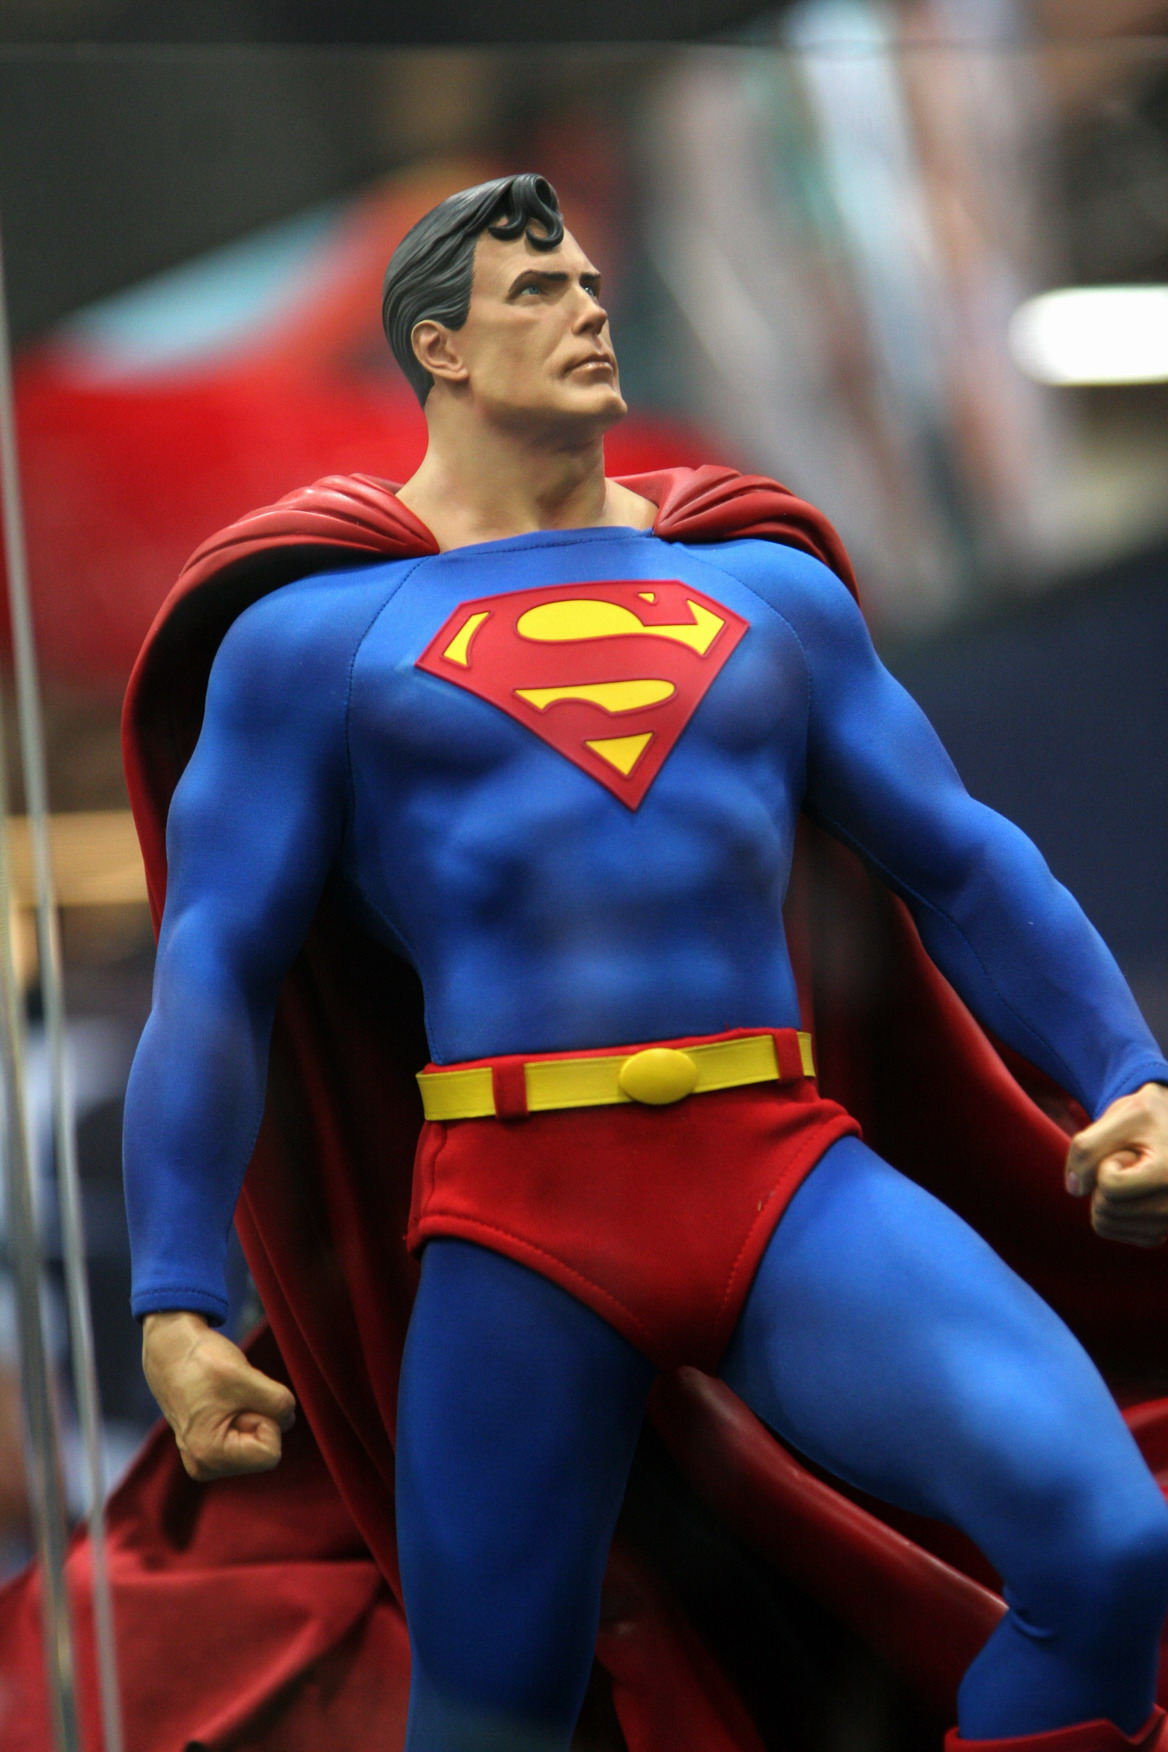 [Action Figures] Todo sobre Action Figures, Hot Toys, Sideshows Comic_Con_2013_Sideshow_superman_reeves_2